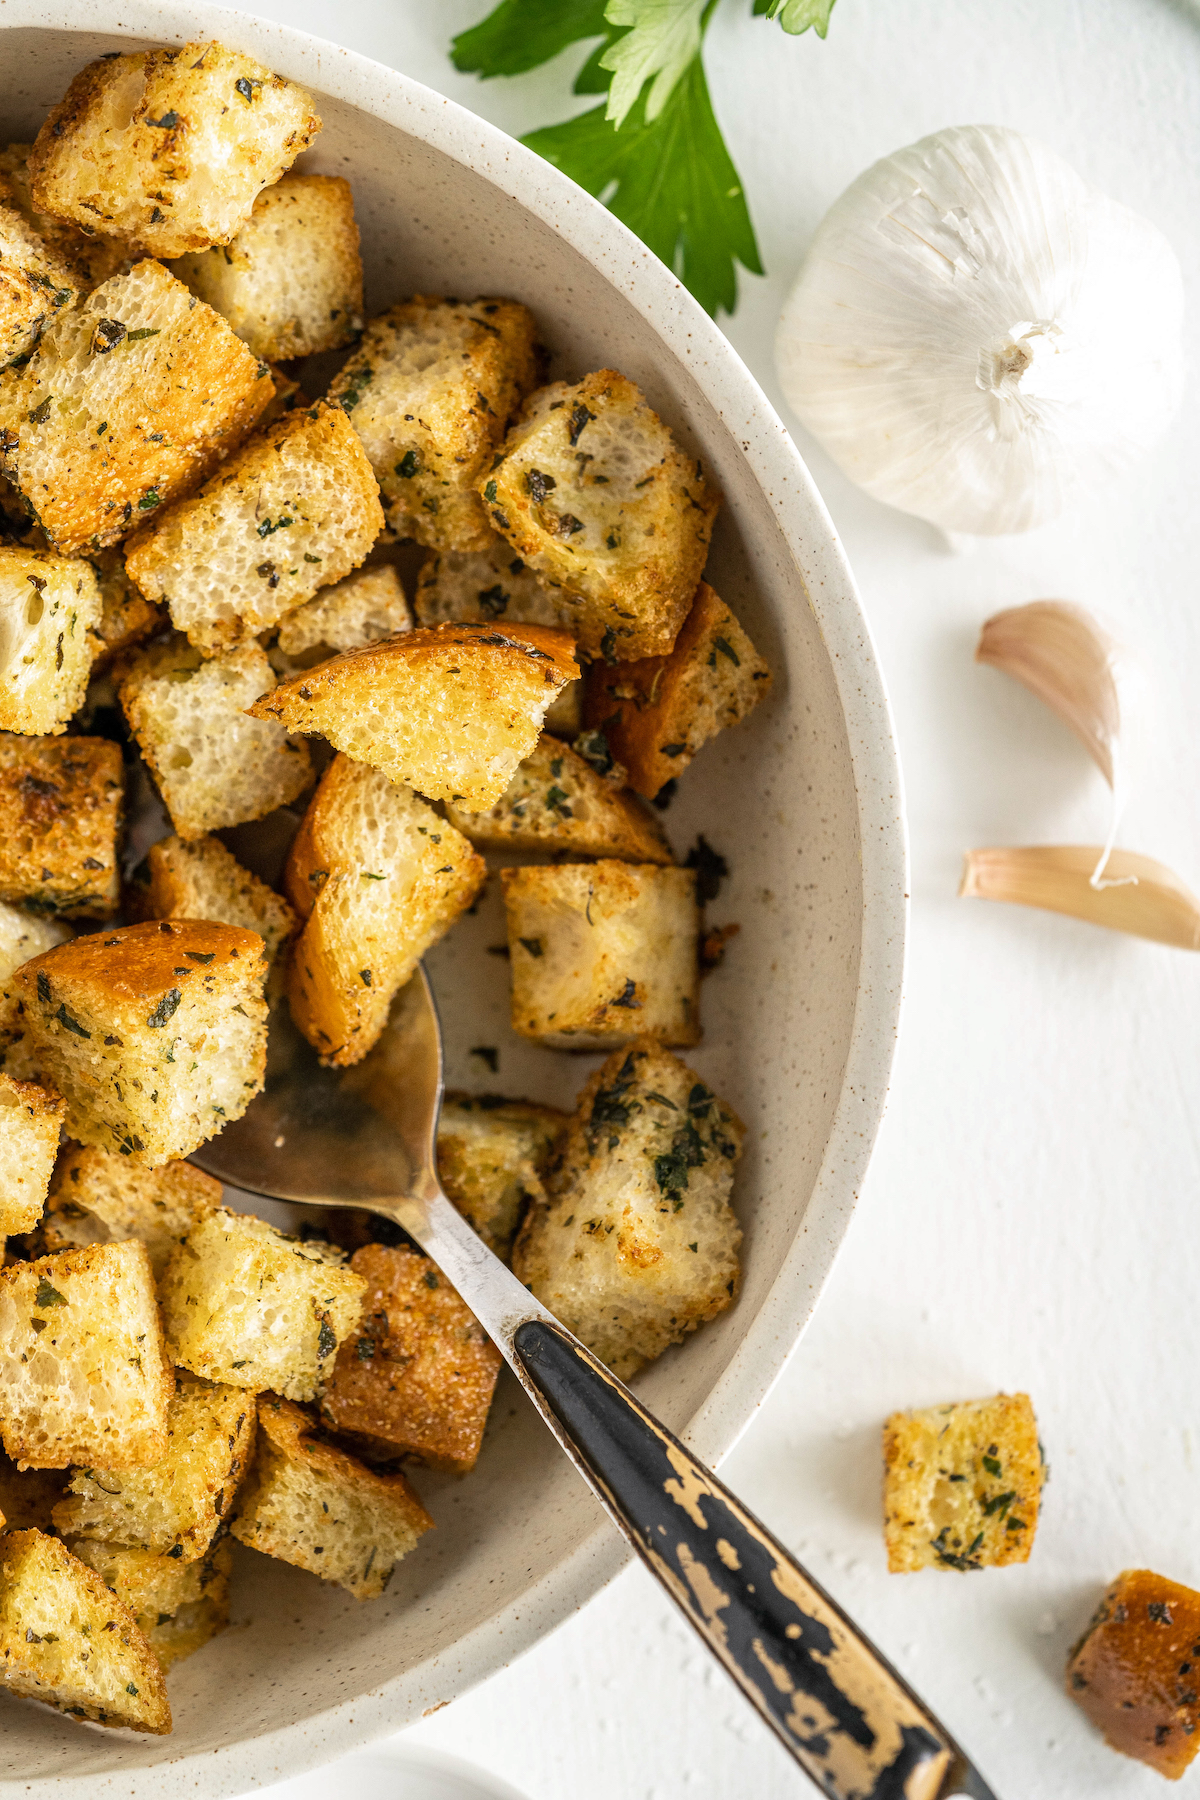 Bowl of crunchy homemade croutons with a spoon.